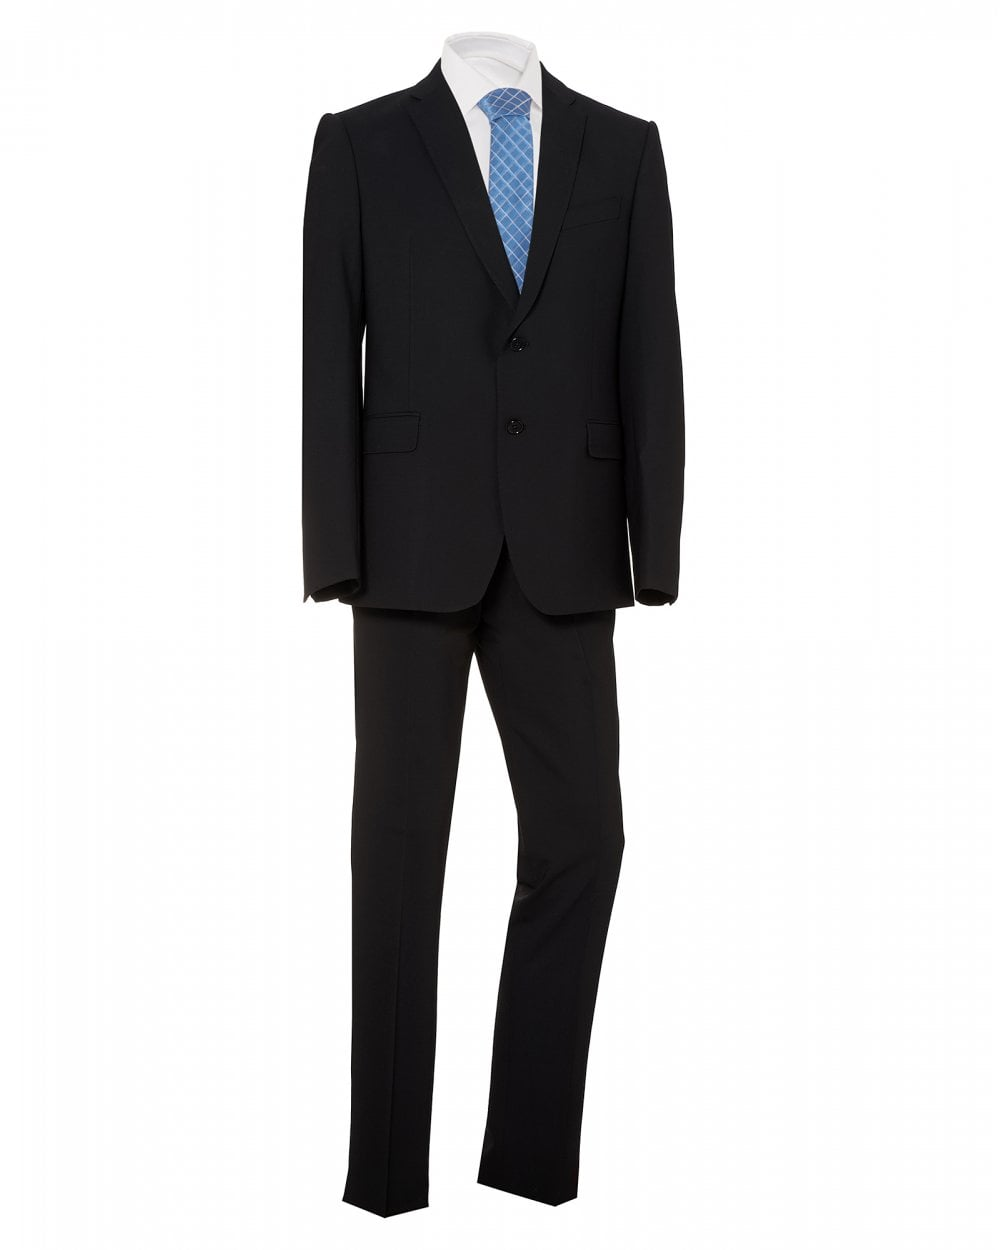 16456551 Emporio Armani Mens 2 Button Suit, Black Stretch Wool Suit